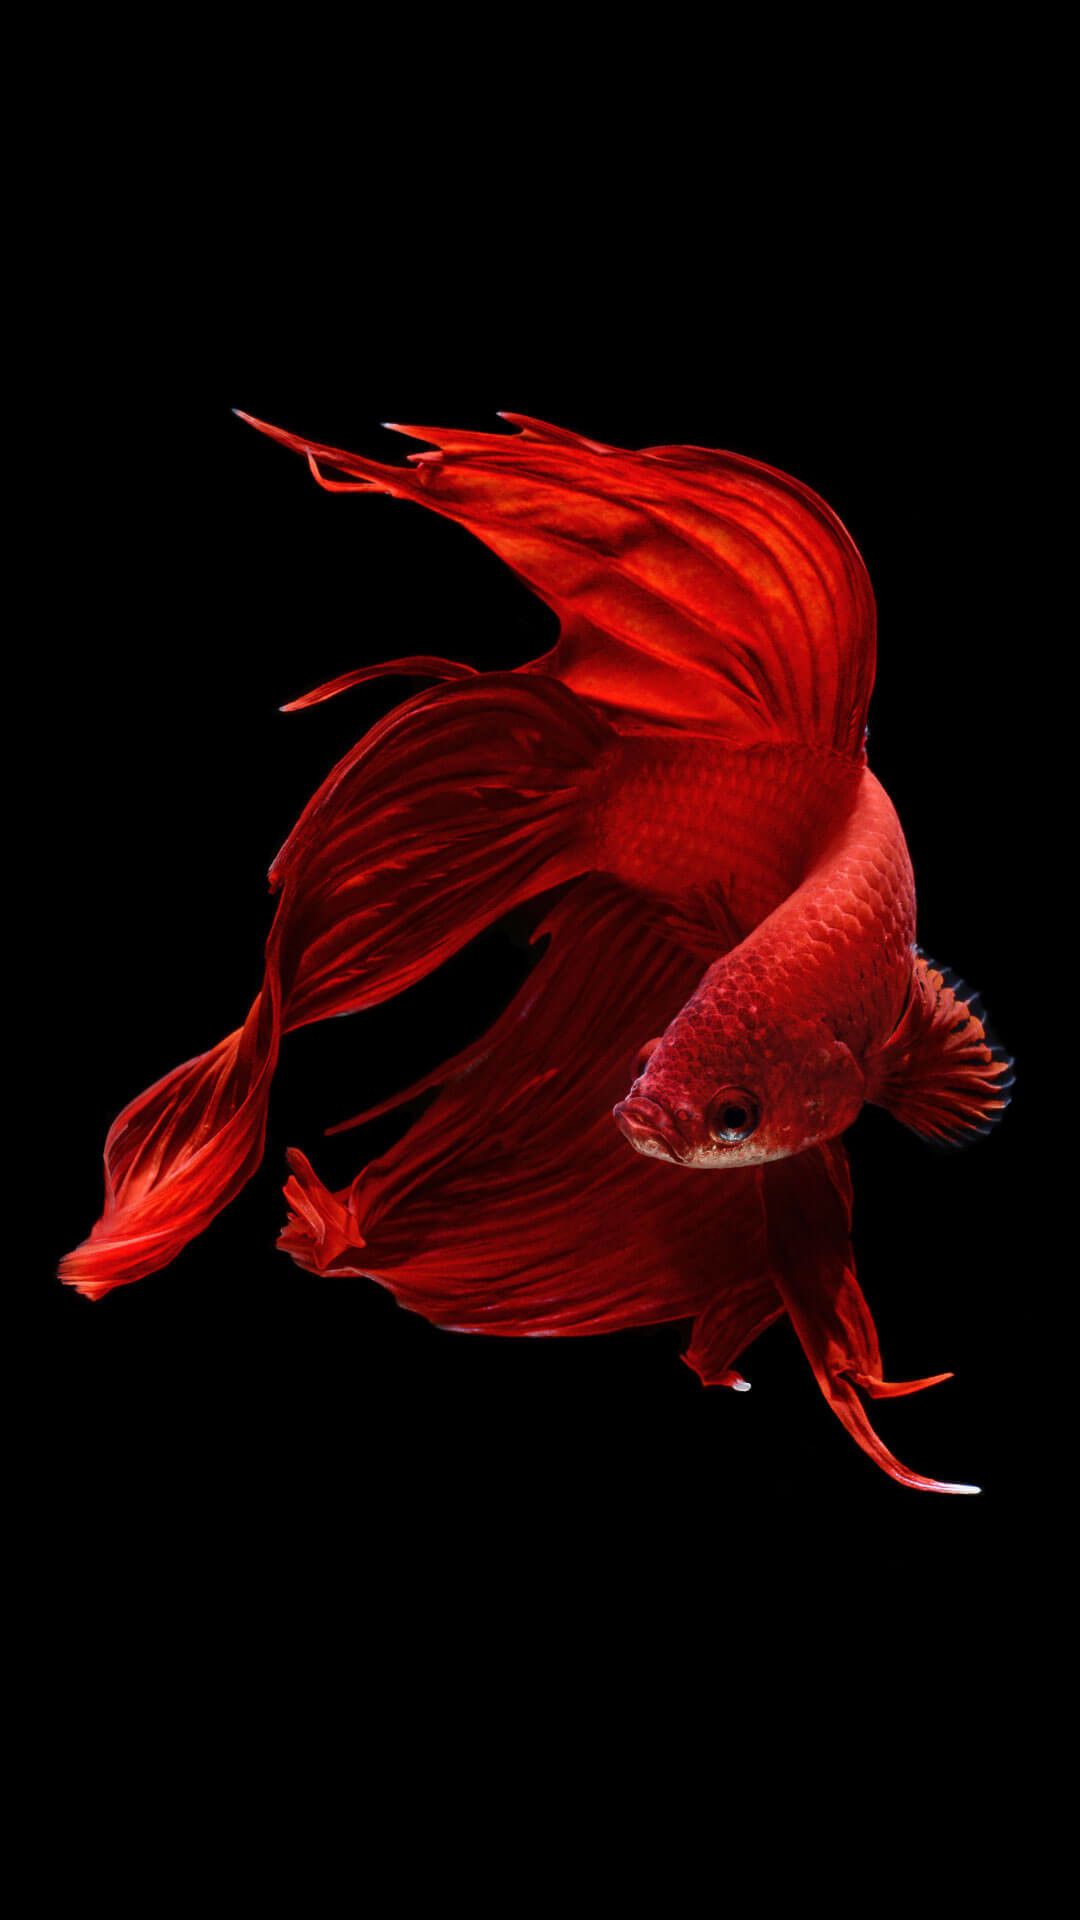 iphone 6s wallpaper iphone 6s fish wallpapers 75 images 11512